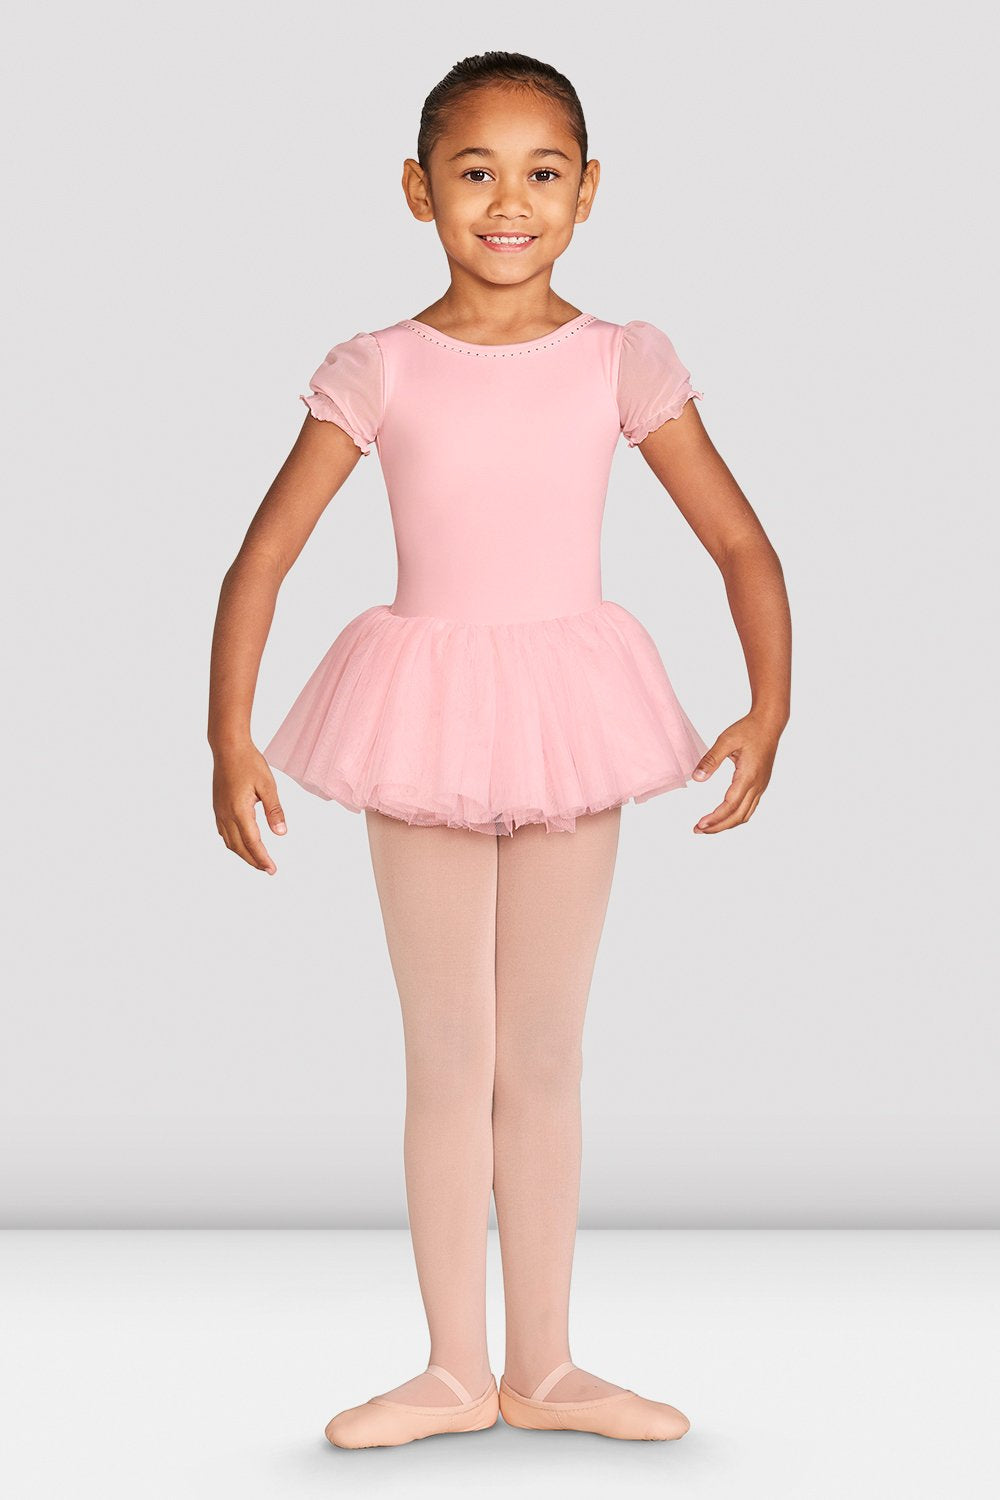 Girls Amelia Frill Cross Back Tutu Leotard - BLOCH US